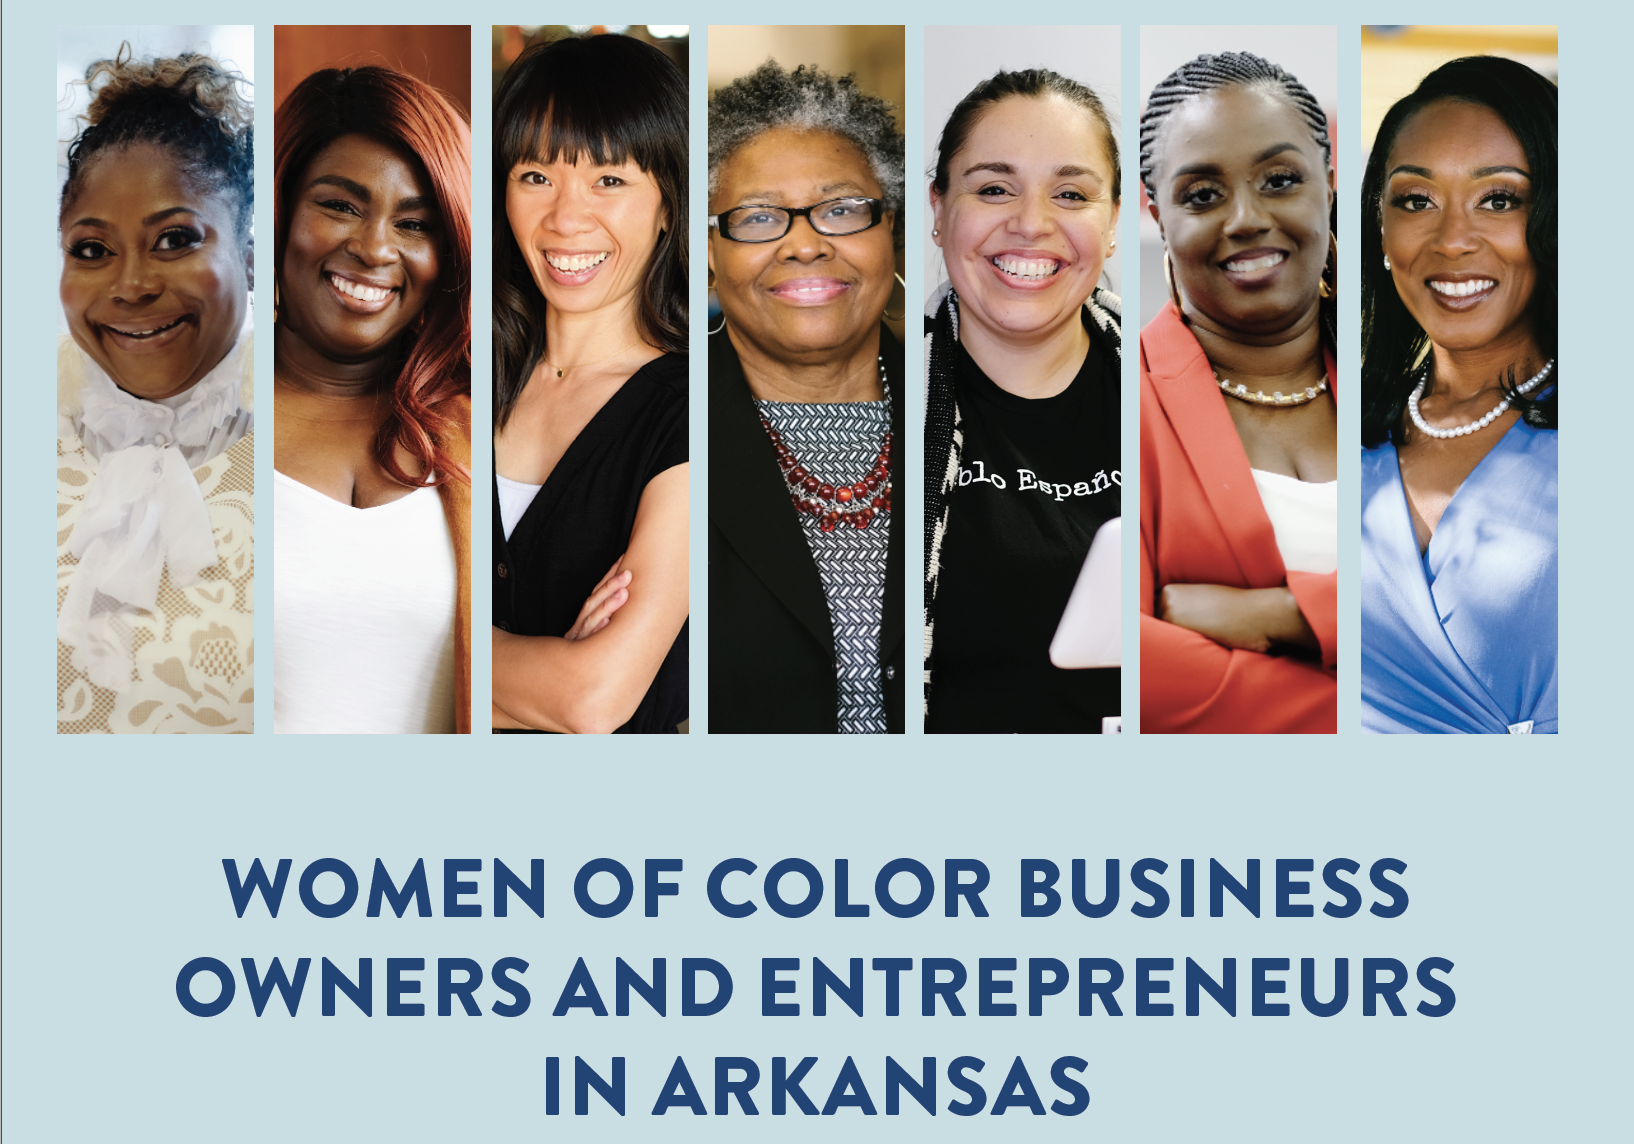 Women of Color Business Owners and Entrepreneurs in Arkansas